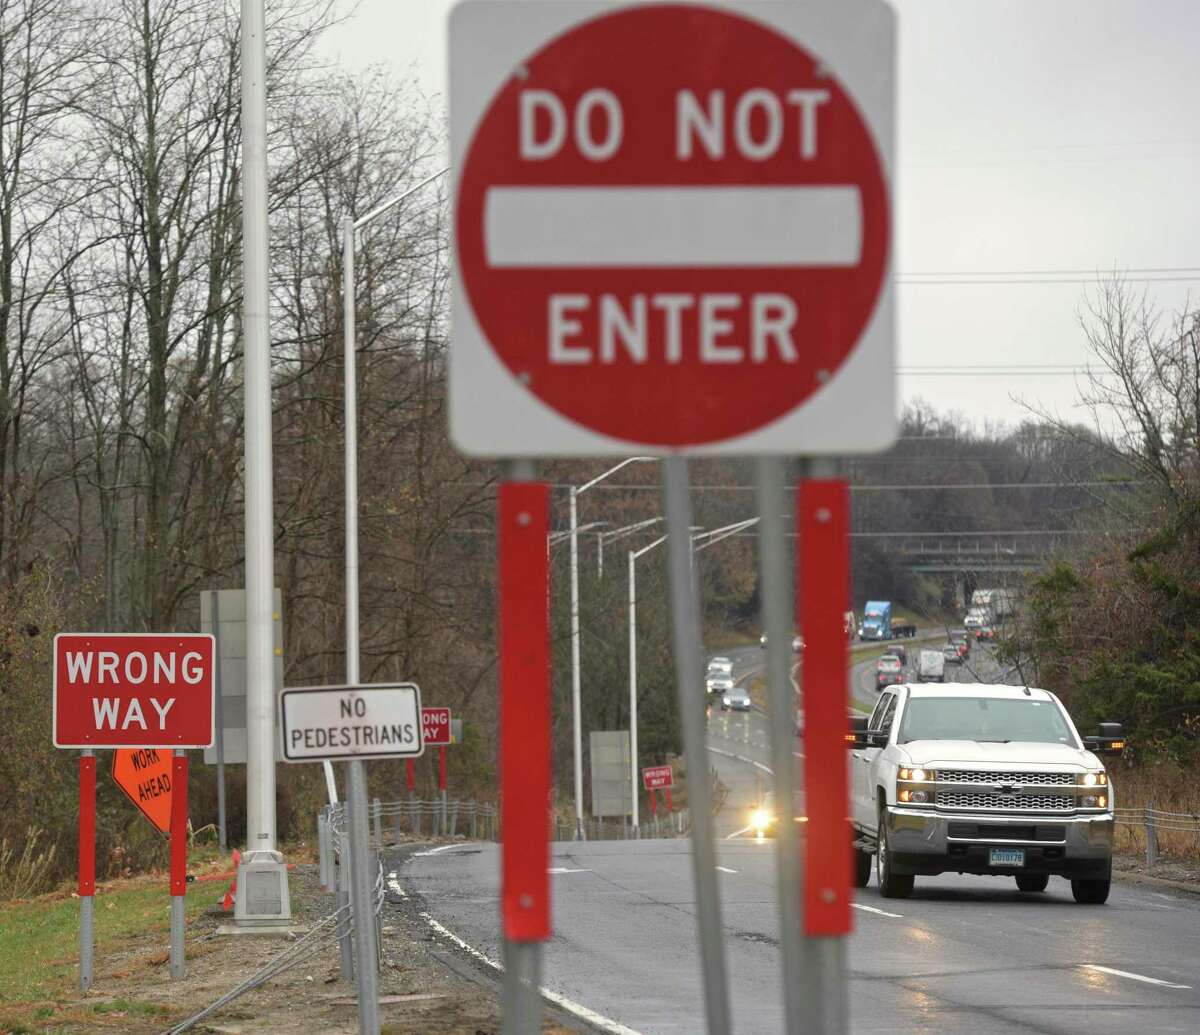 The state is installing high-tech wrong-way signs to prevent crashes at the Westbound Exit 8 off ramp. Monday, November 18, 2019, Danbury, Conn.